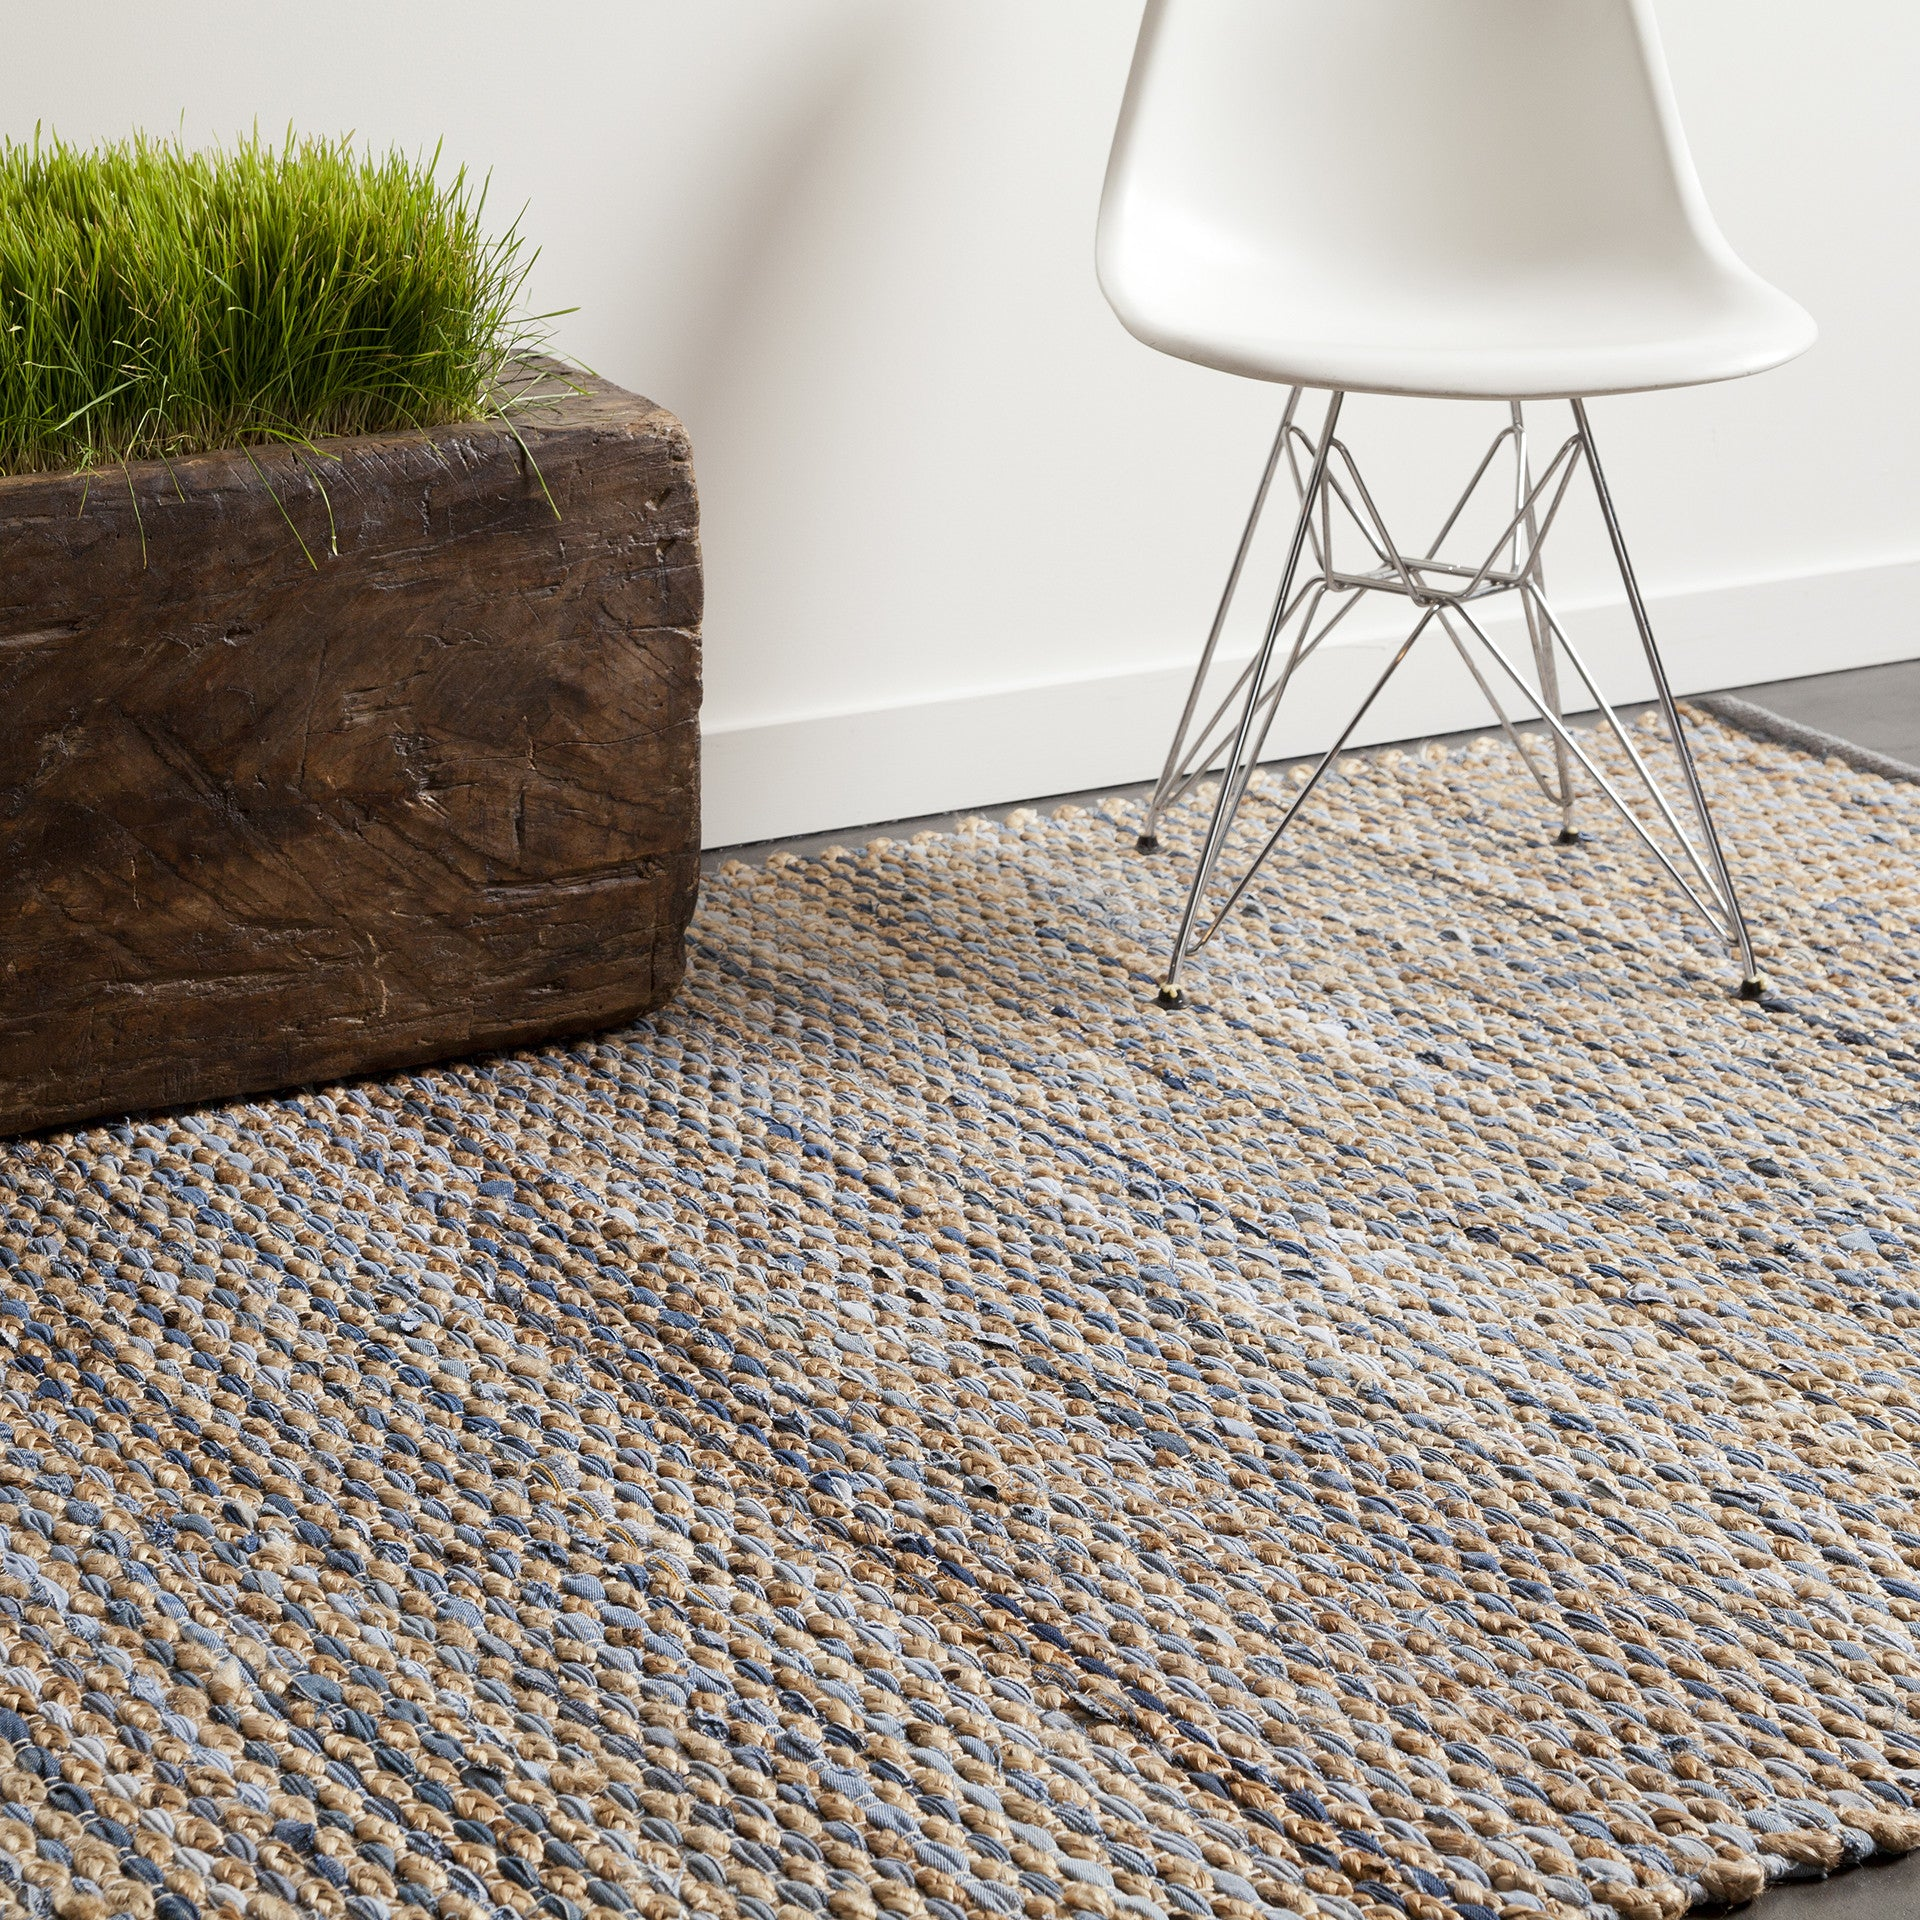 Easton Collection Hand Woven Area Rug In Blue, Tan, U0026 Grey Design By  Chandra Rugs